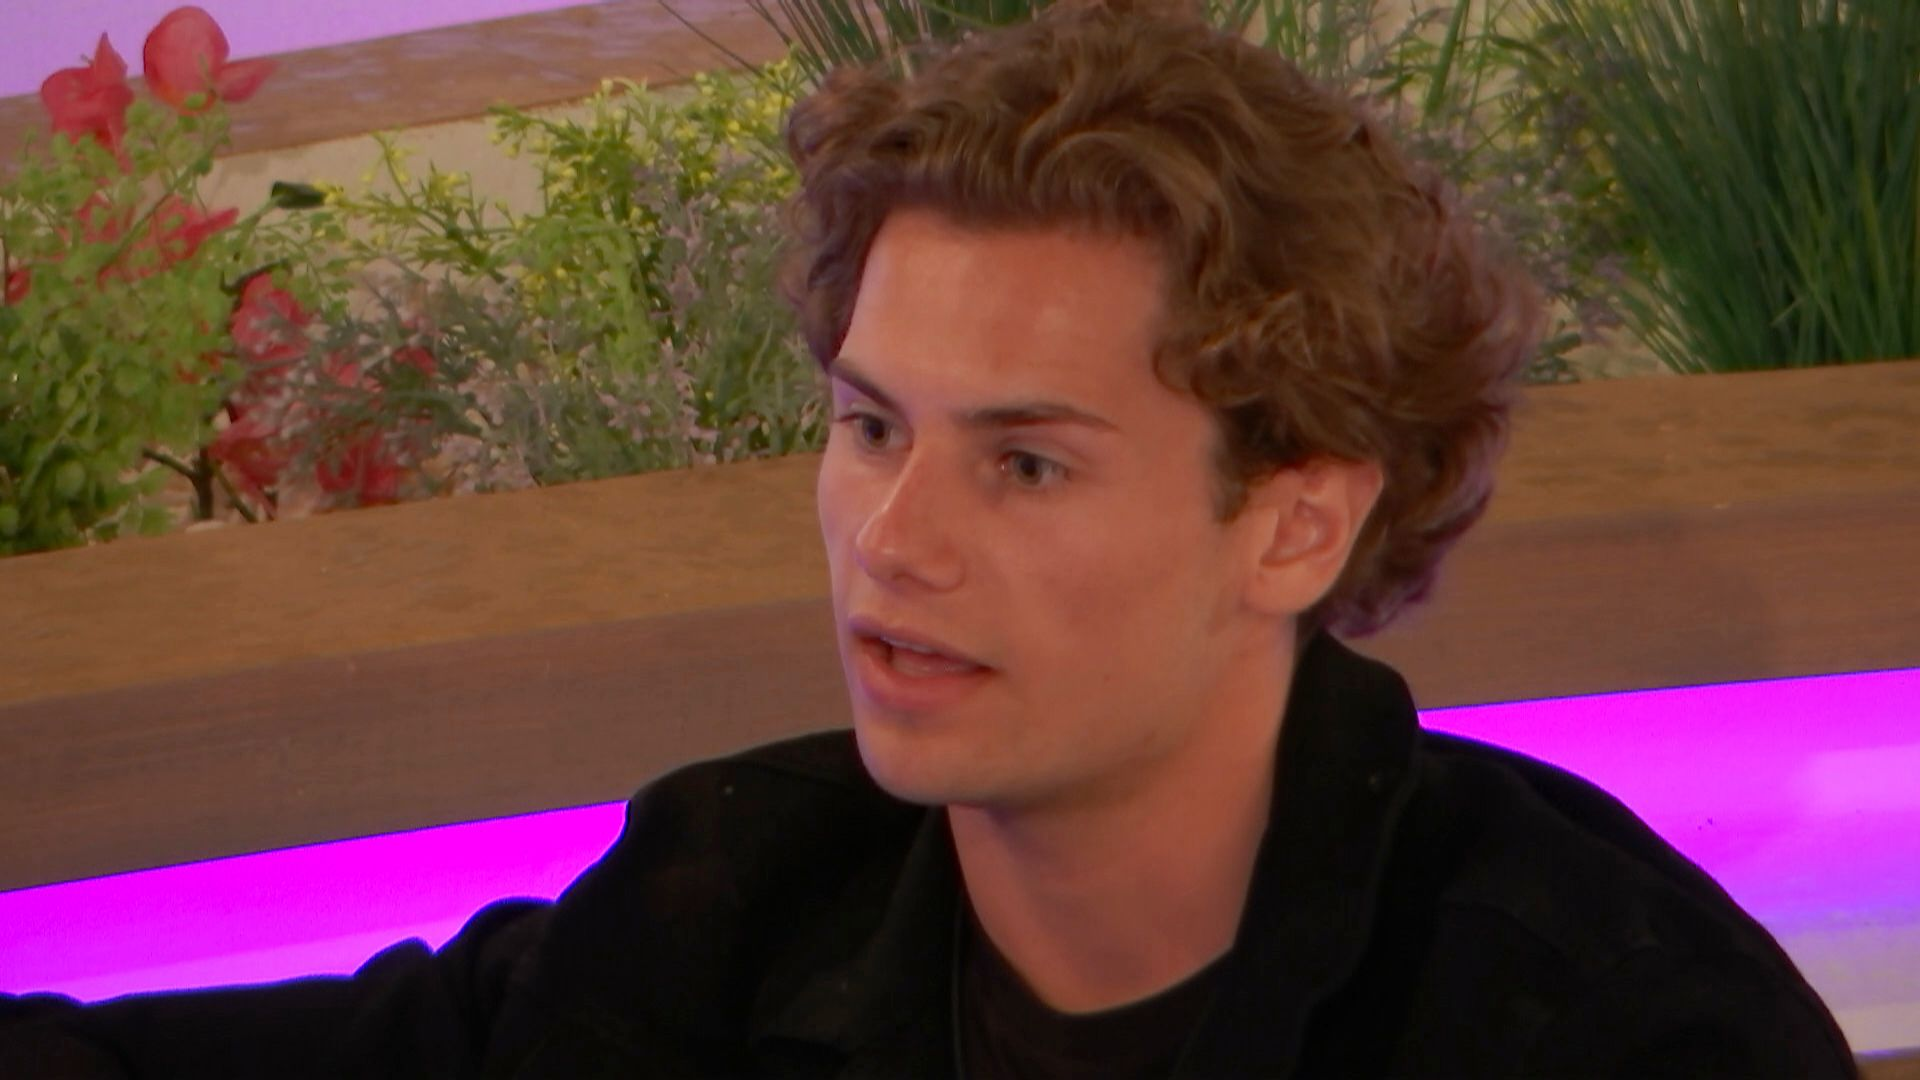 Women's Aid Has Issued a Warning over Joe's Behaviour Towards Lucie on Love Island